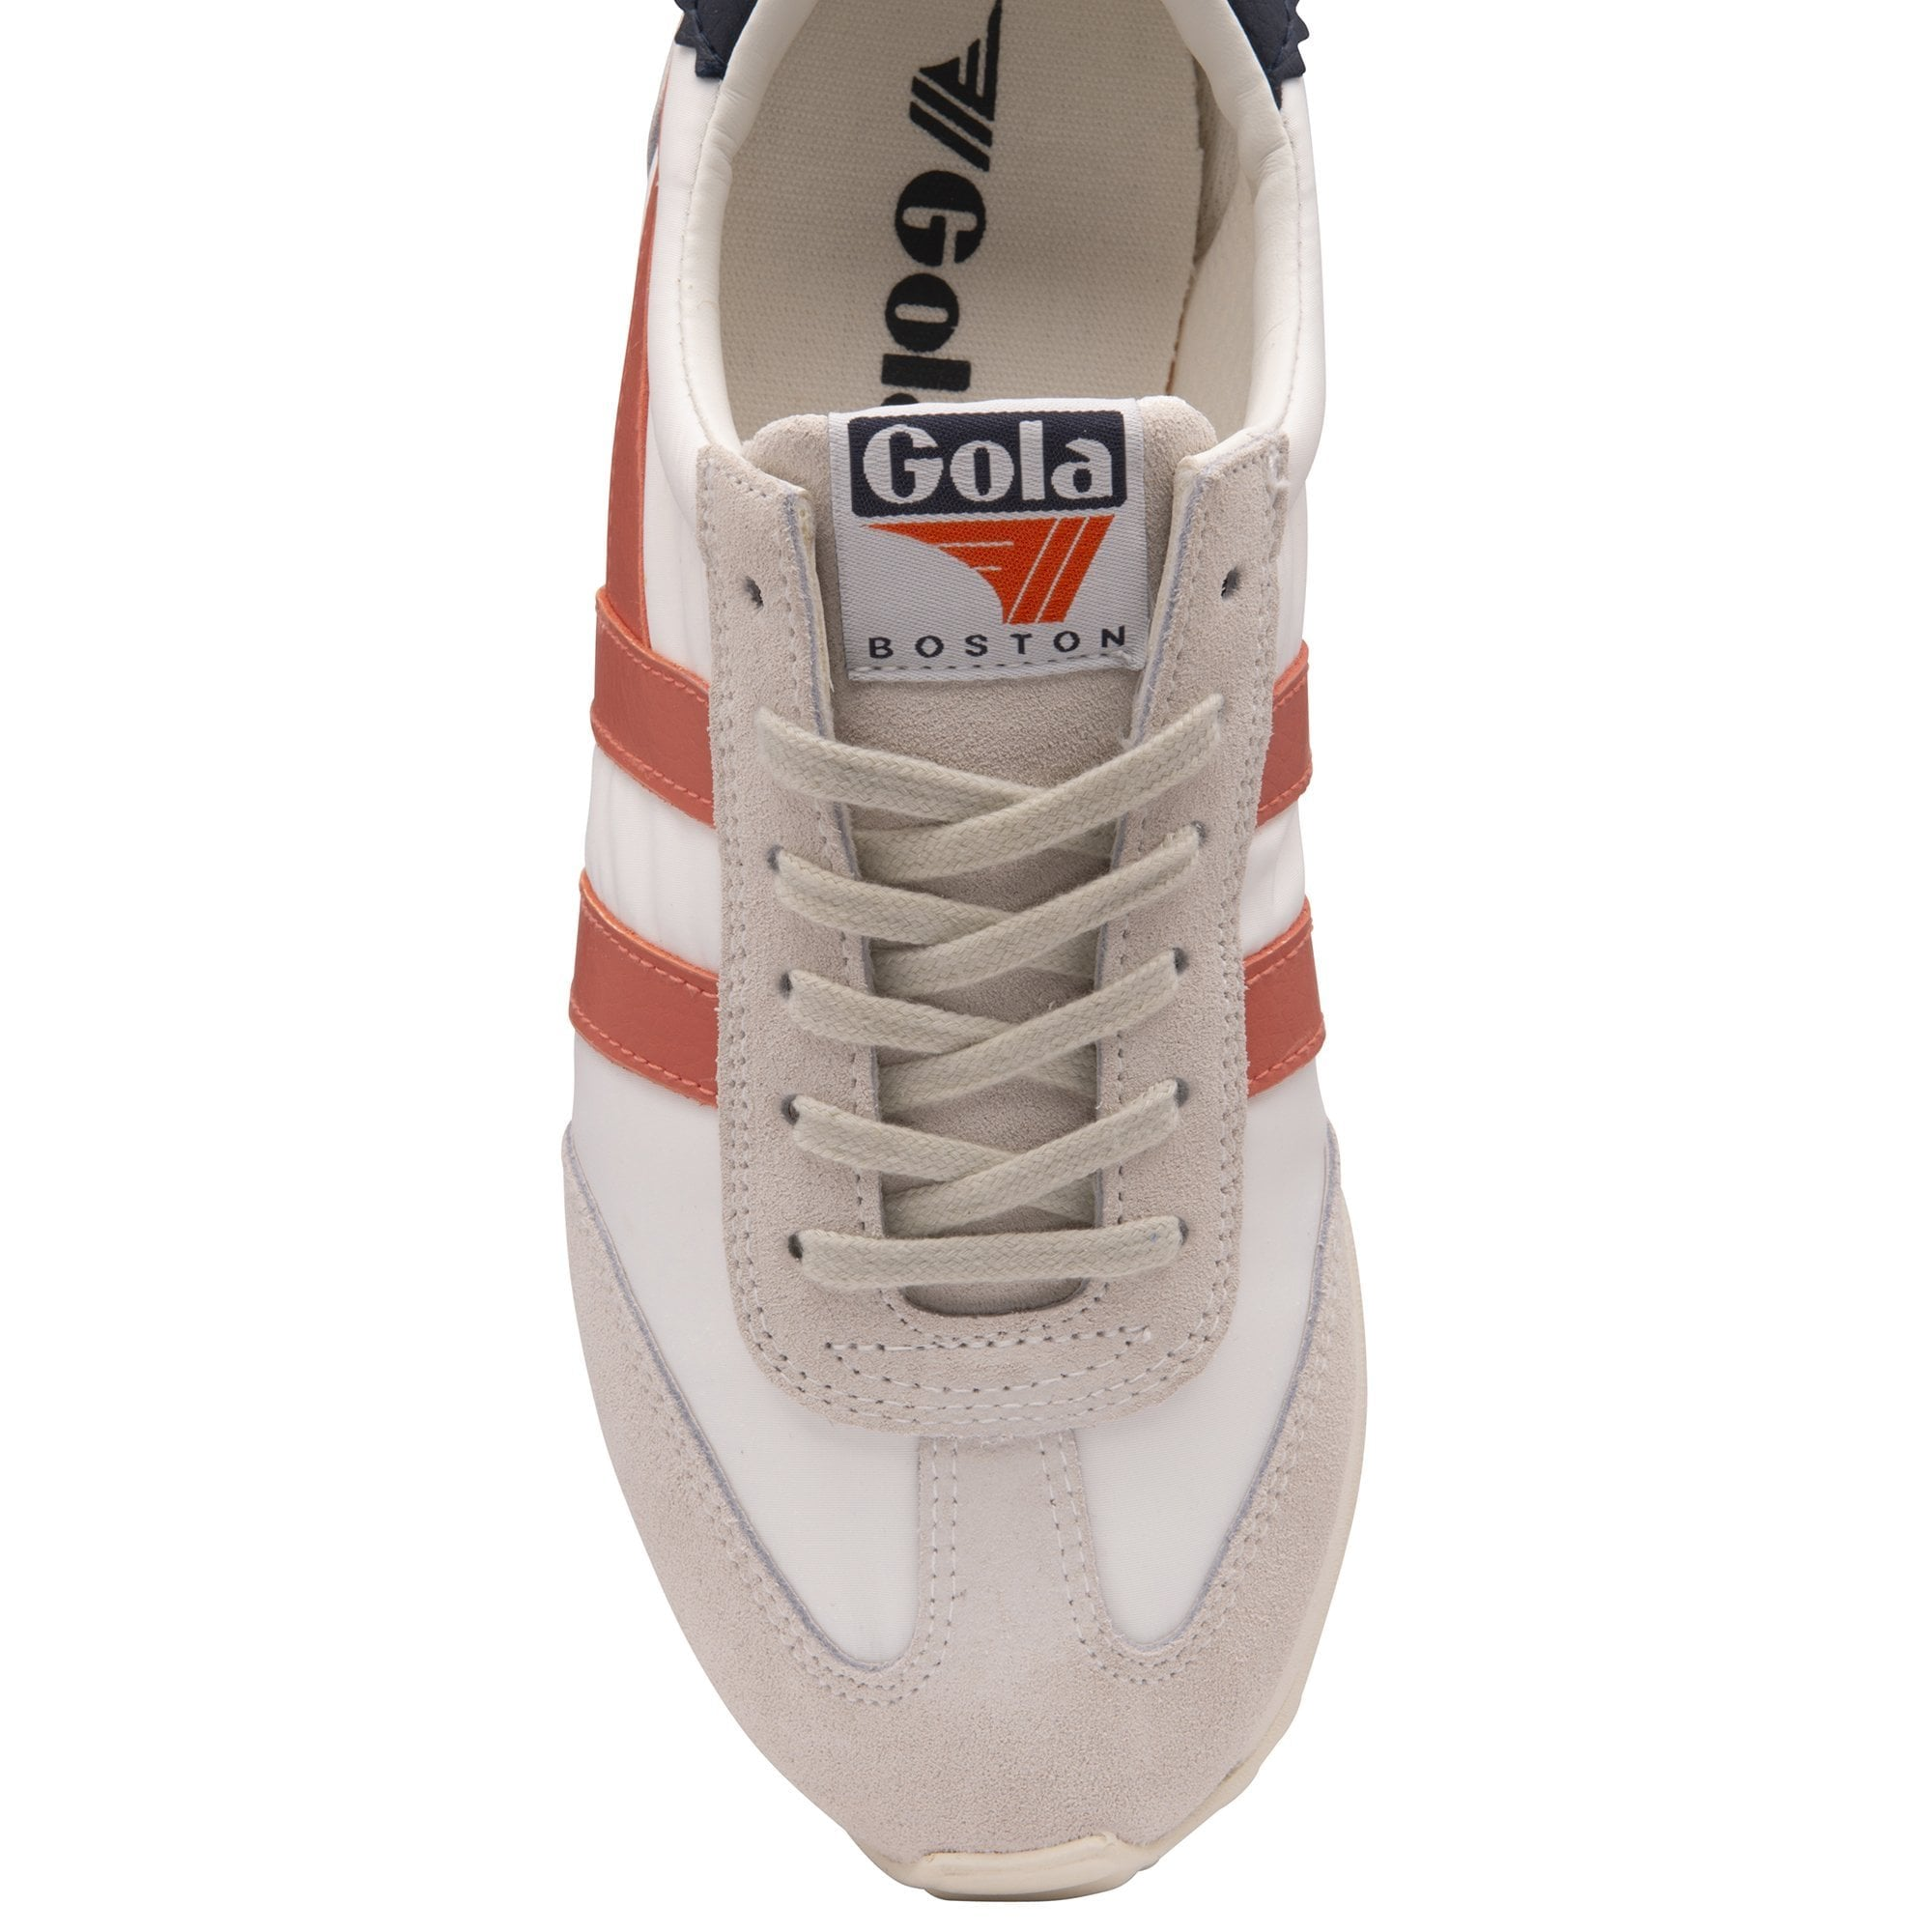 Women's Boston '78 Sneakers